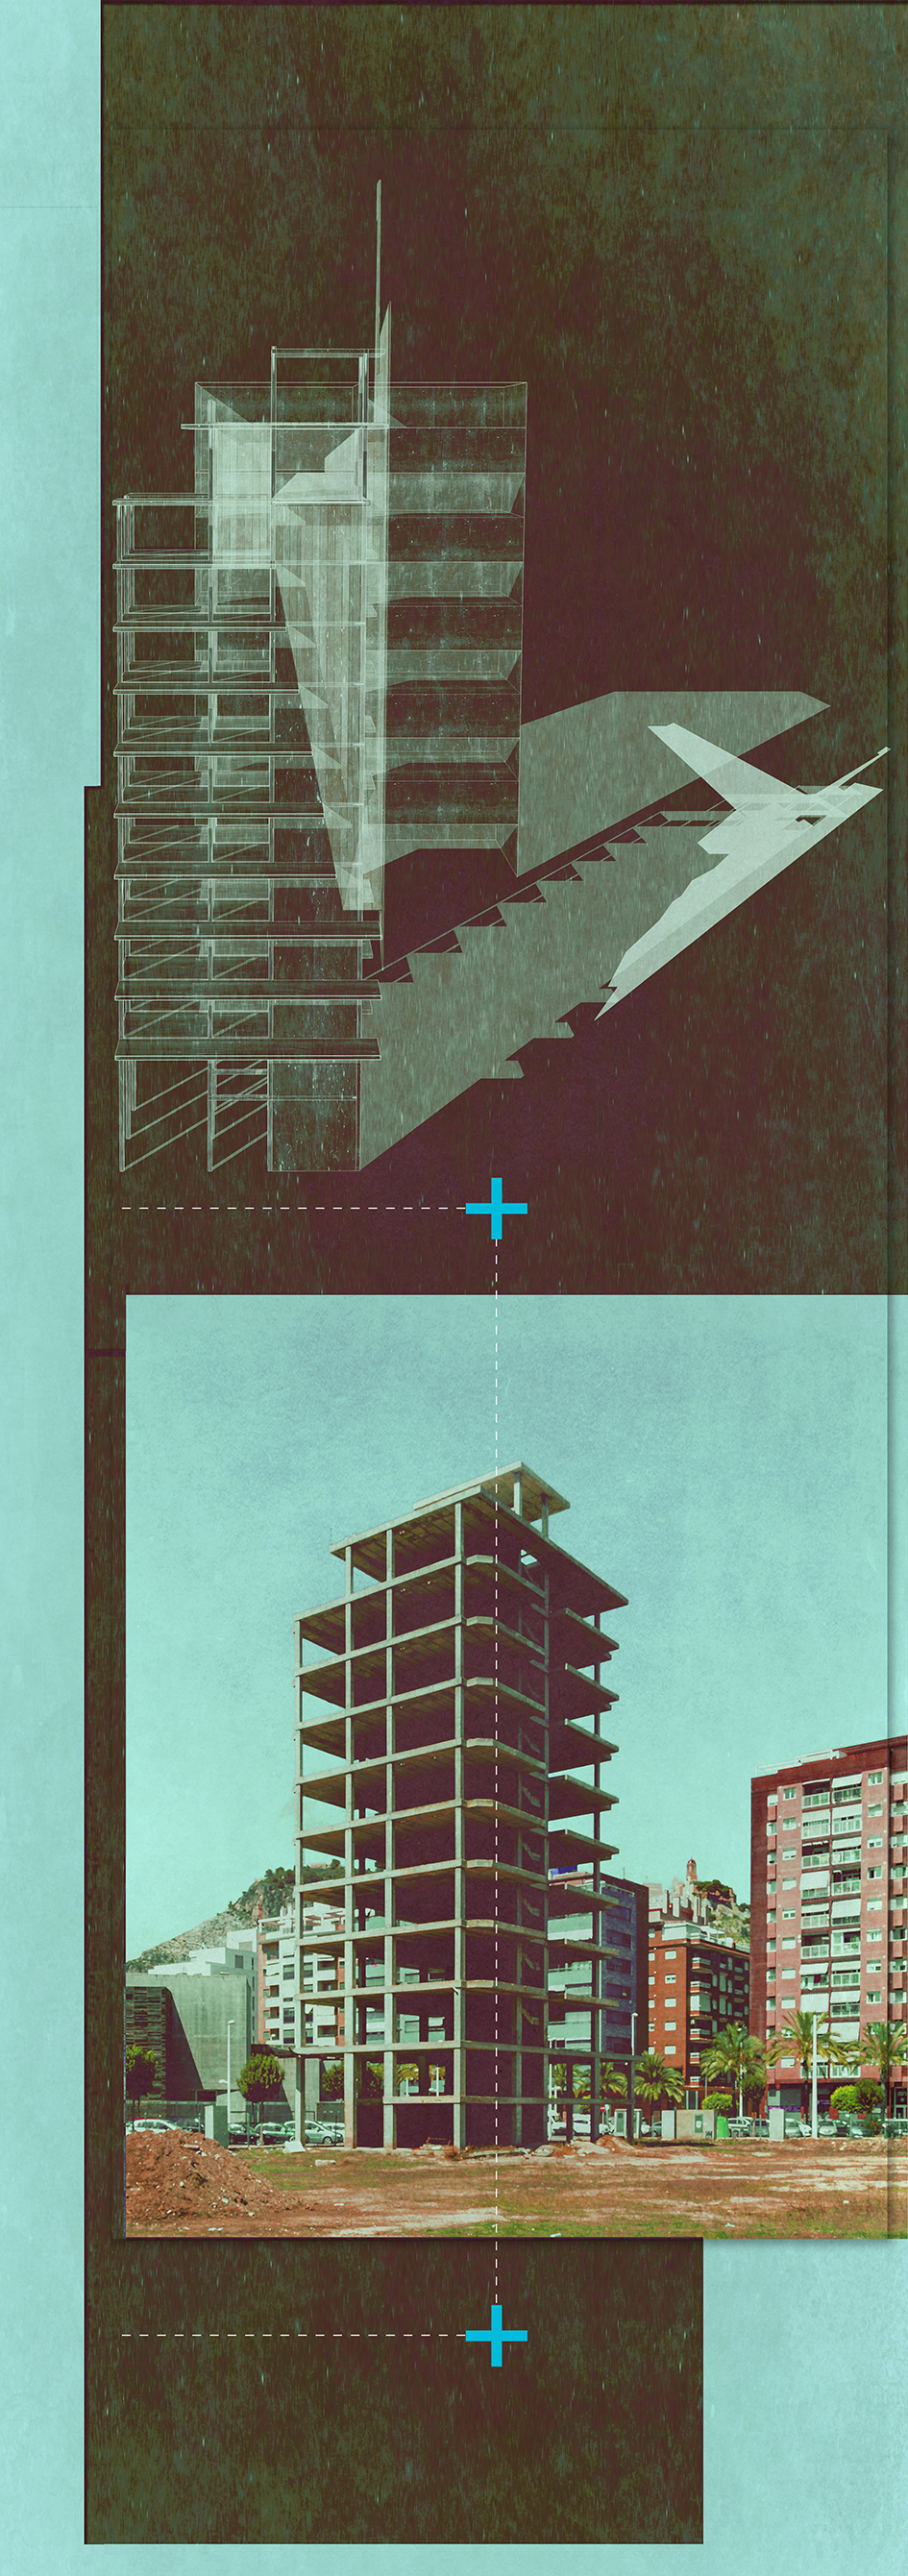 rethinking redrawing unfinished architecture_politecnico di milano_thesis_loic vendrame_hazem talaat.jpg